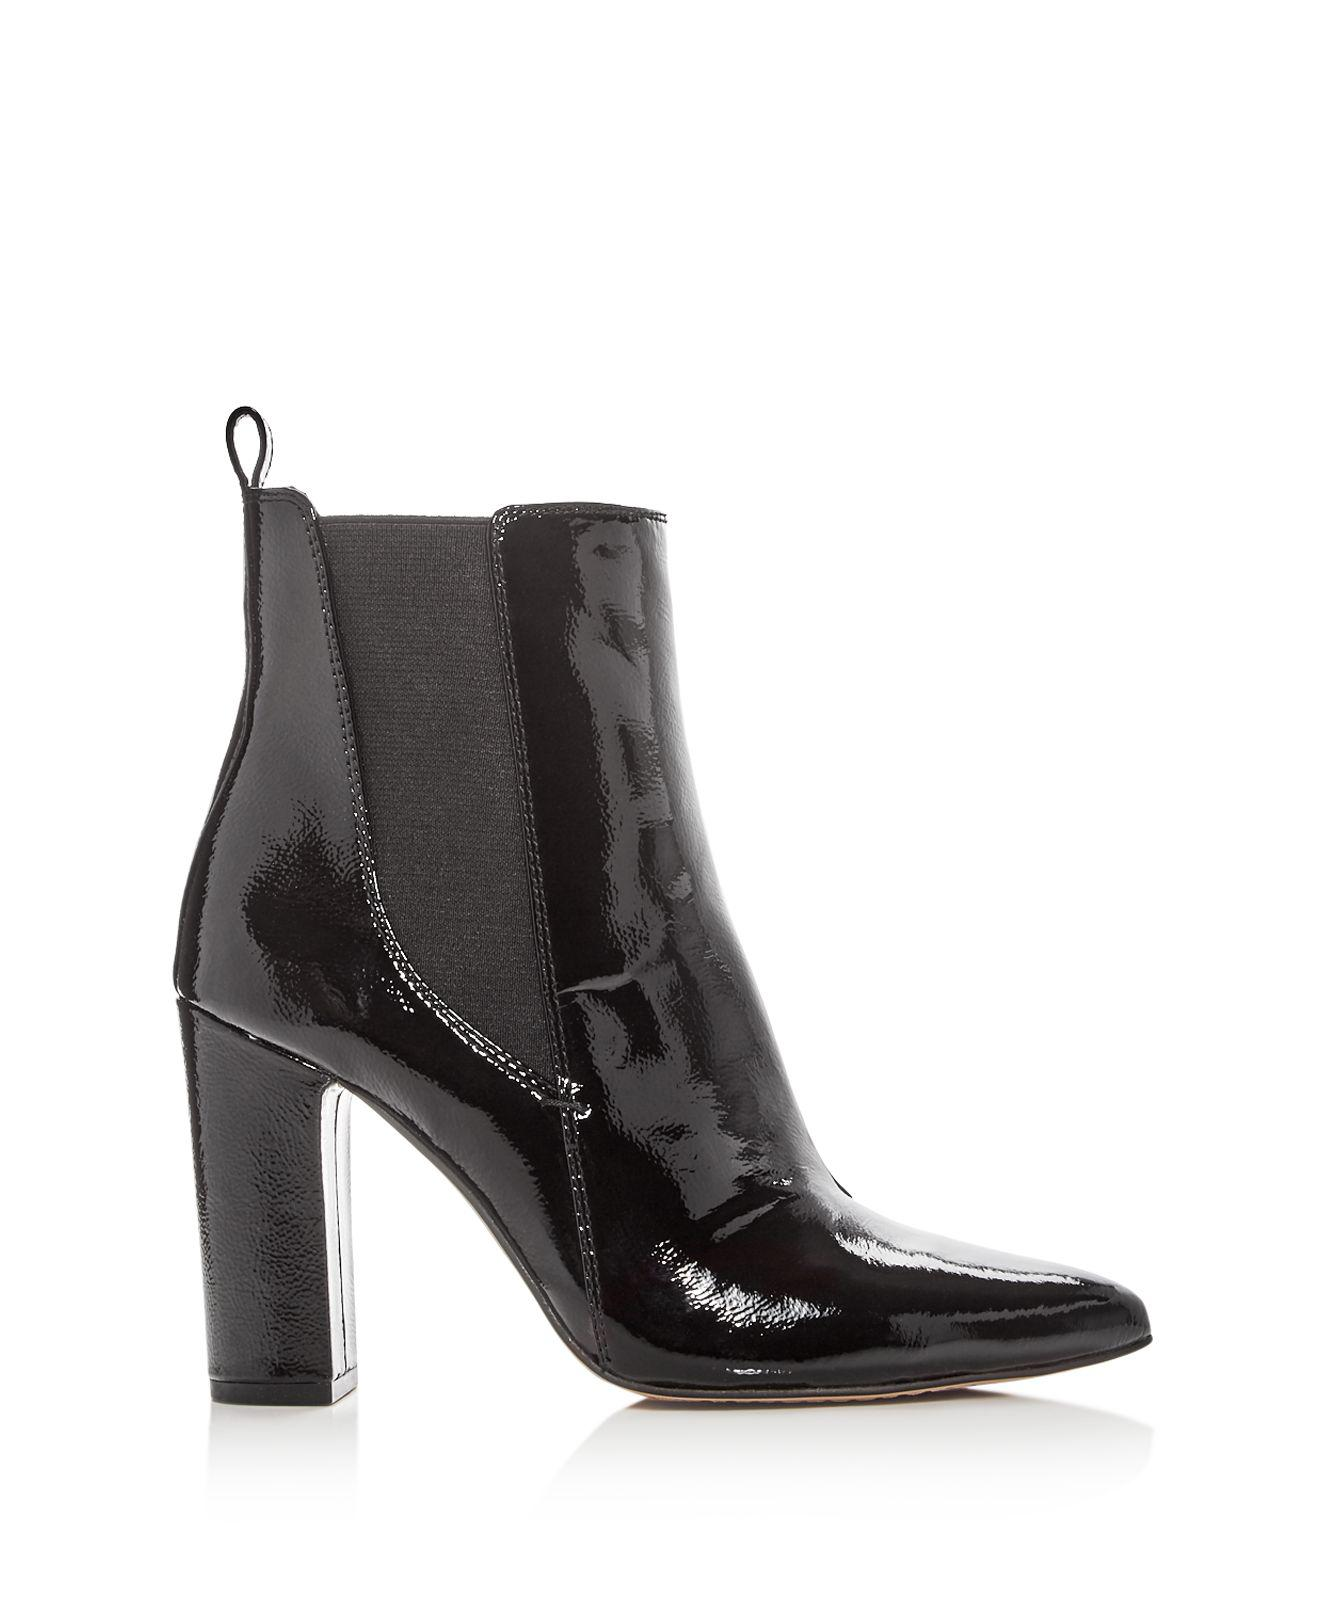 Vince Camuto Women S Britsy Patent Leather High Heel